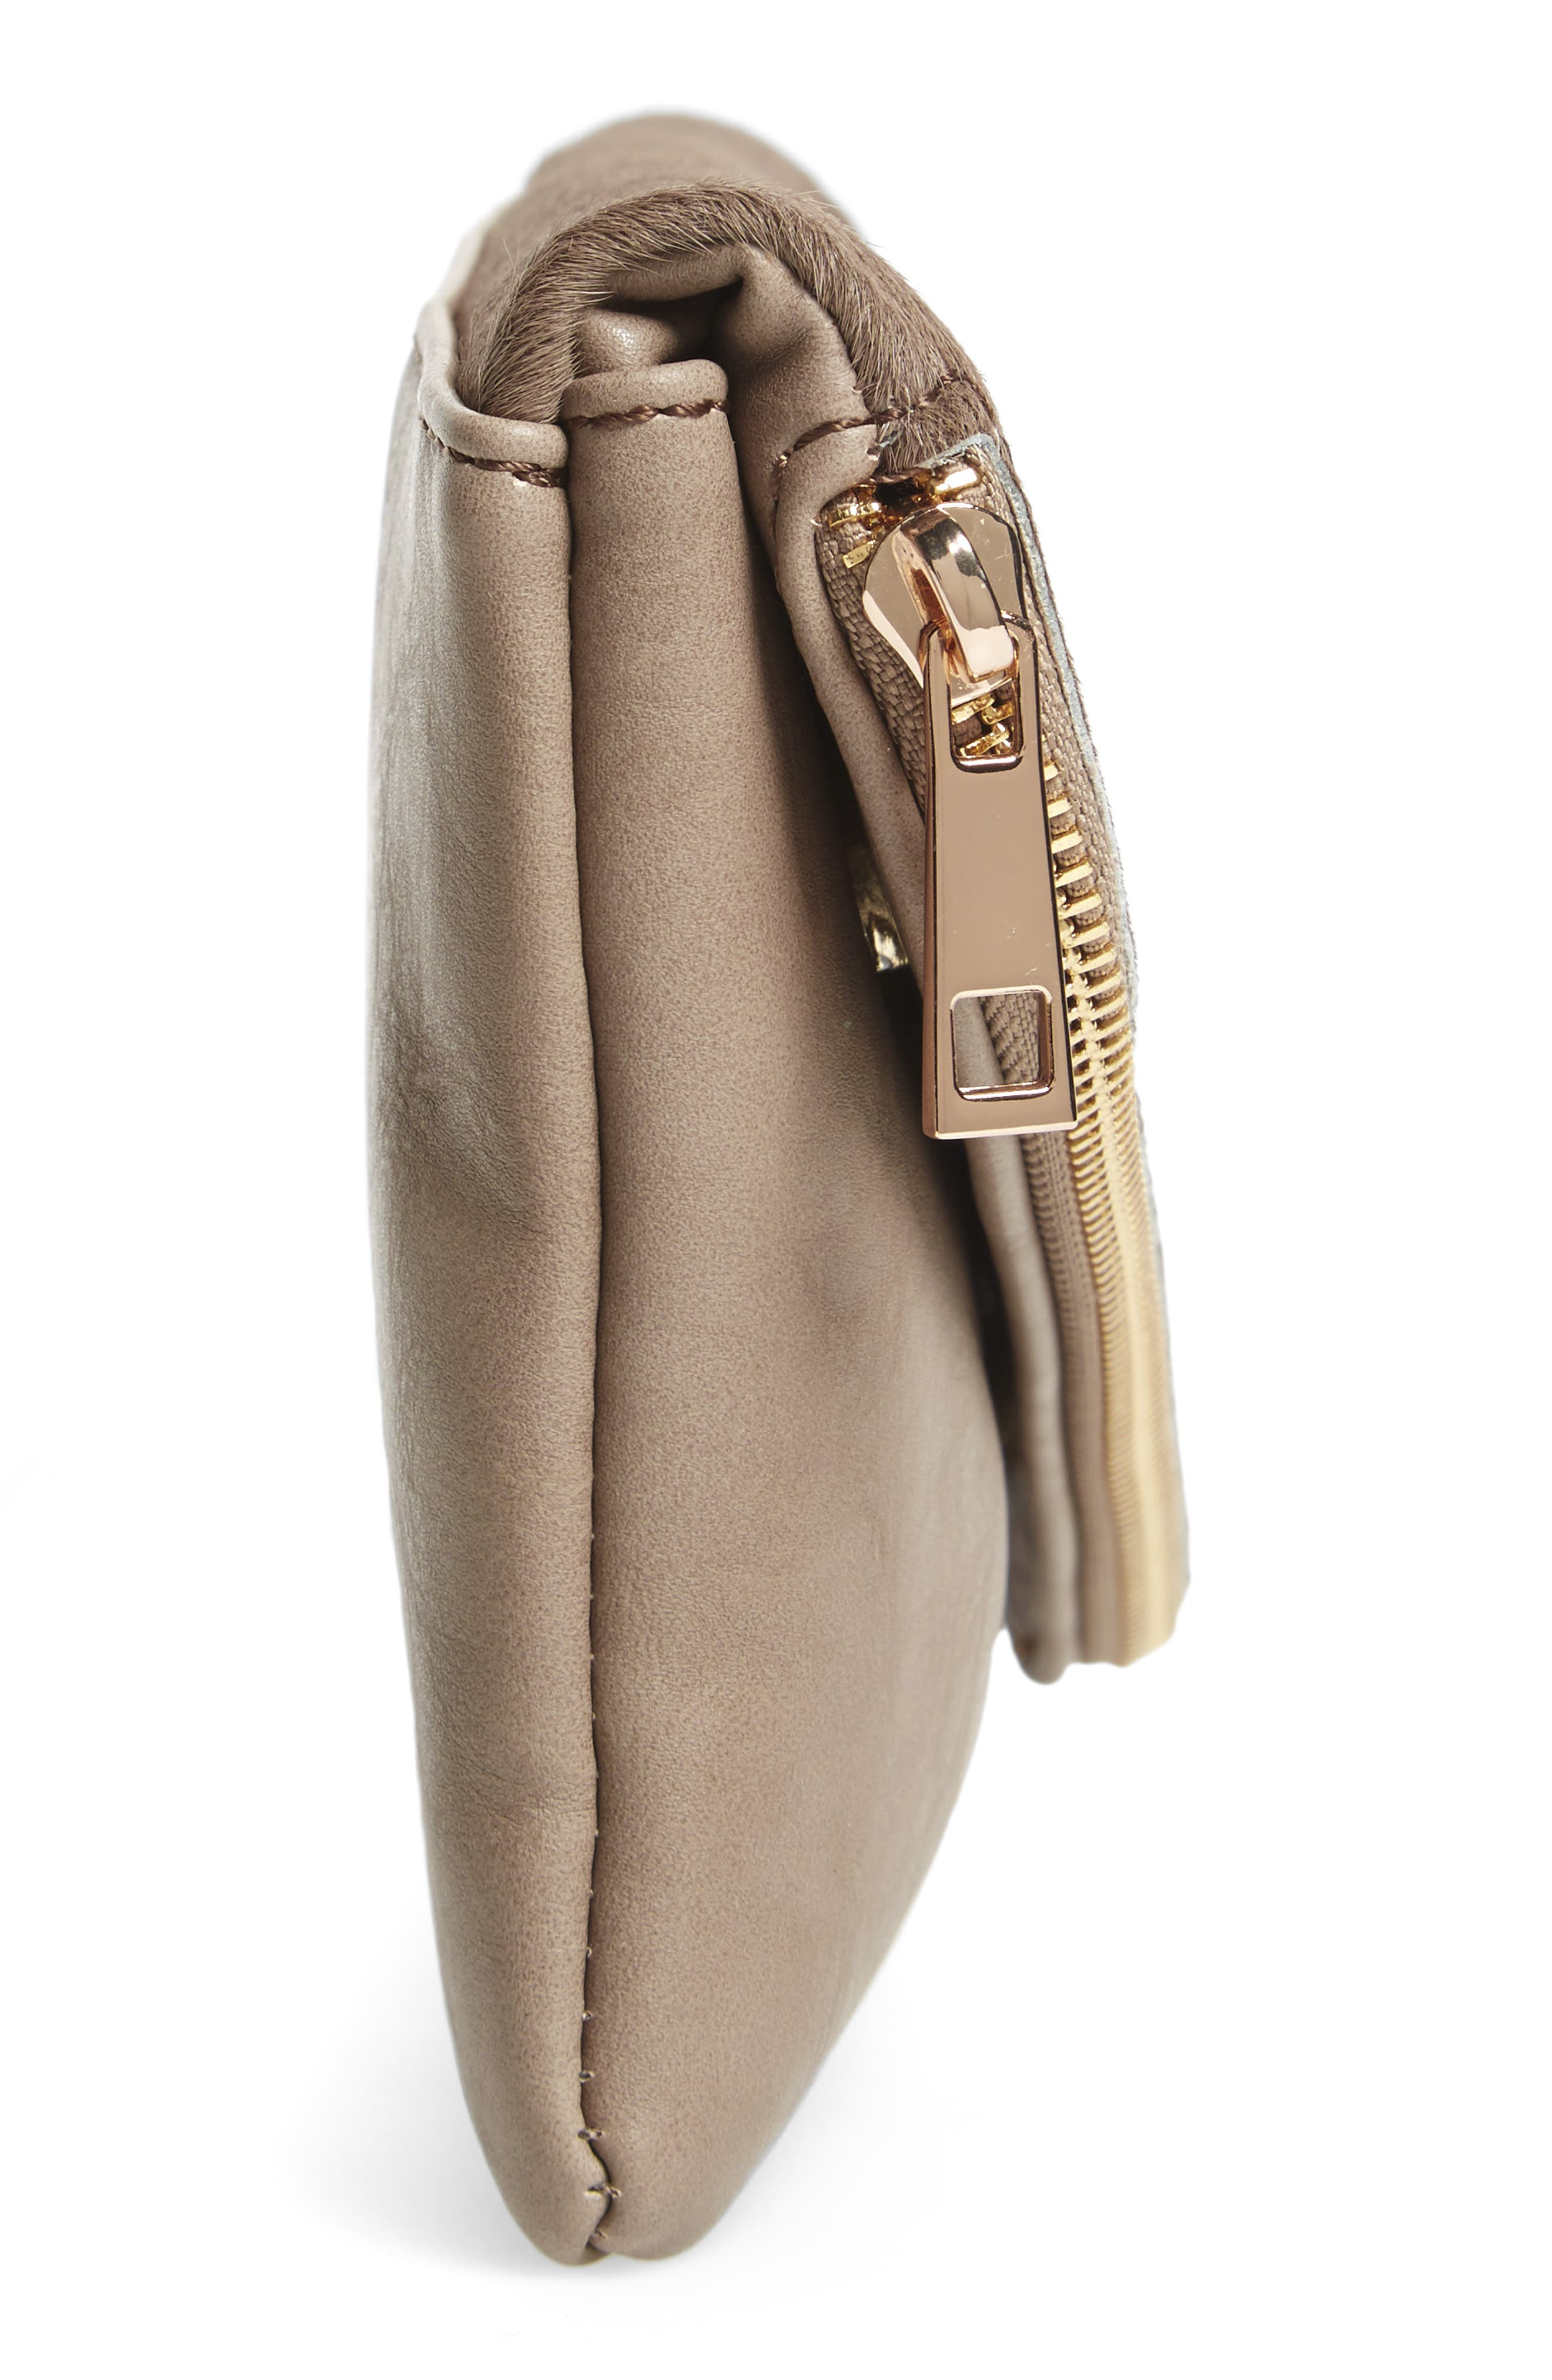 Tammi Genuine Calf Hair & Faux Leather Foldover Clutch,                             Alternate thumbnail 4, color,                             Taupe